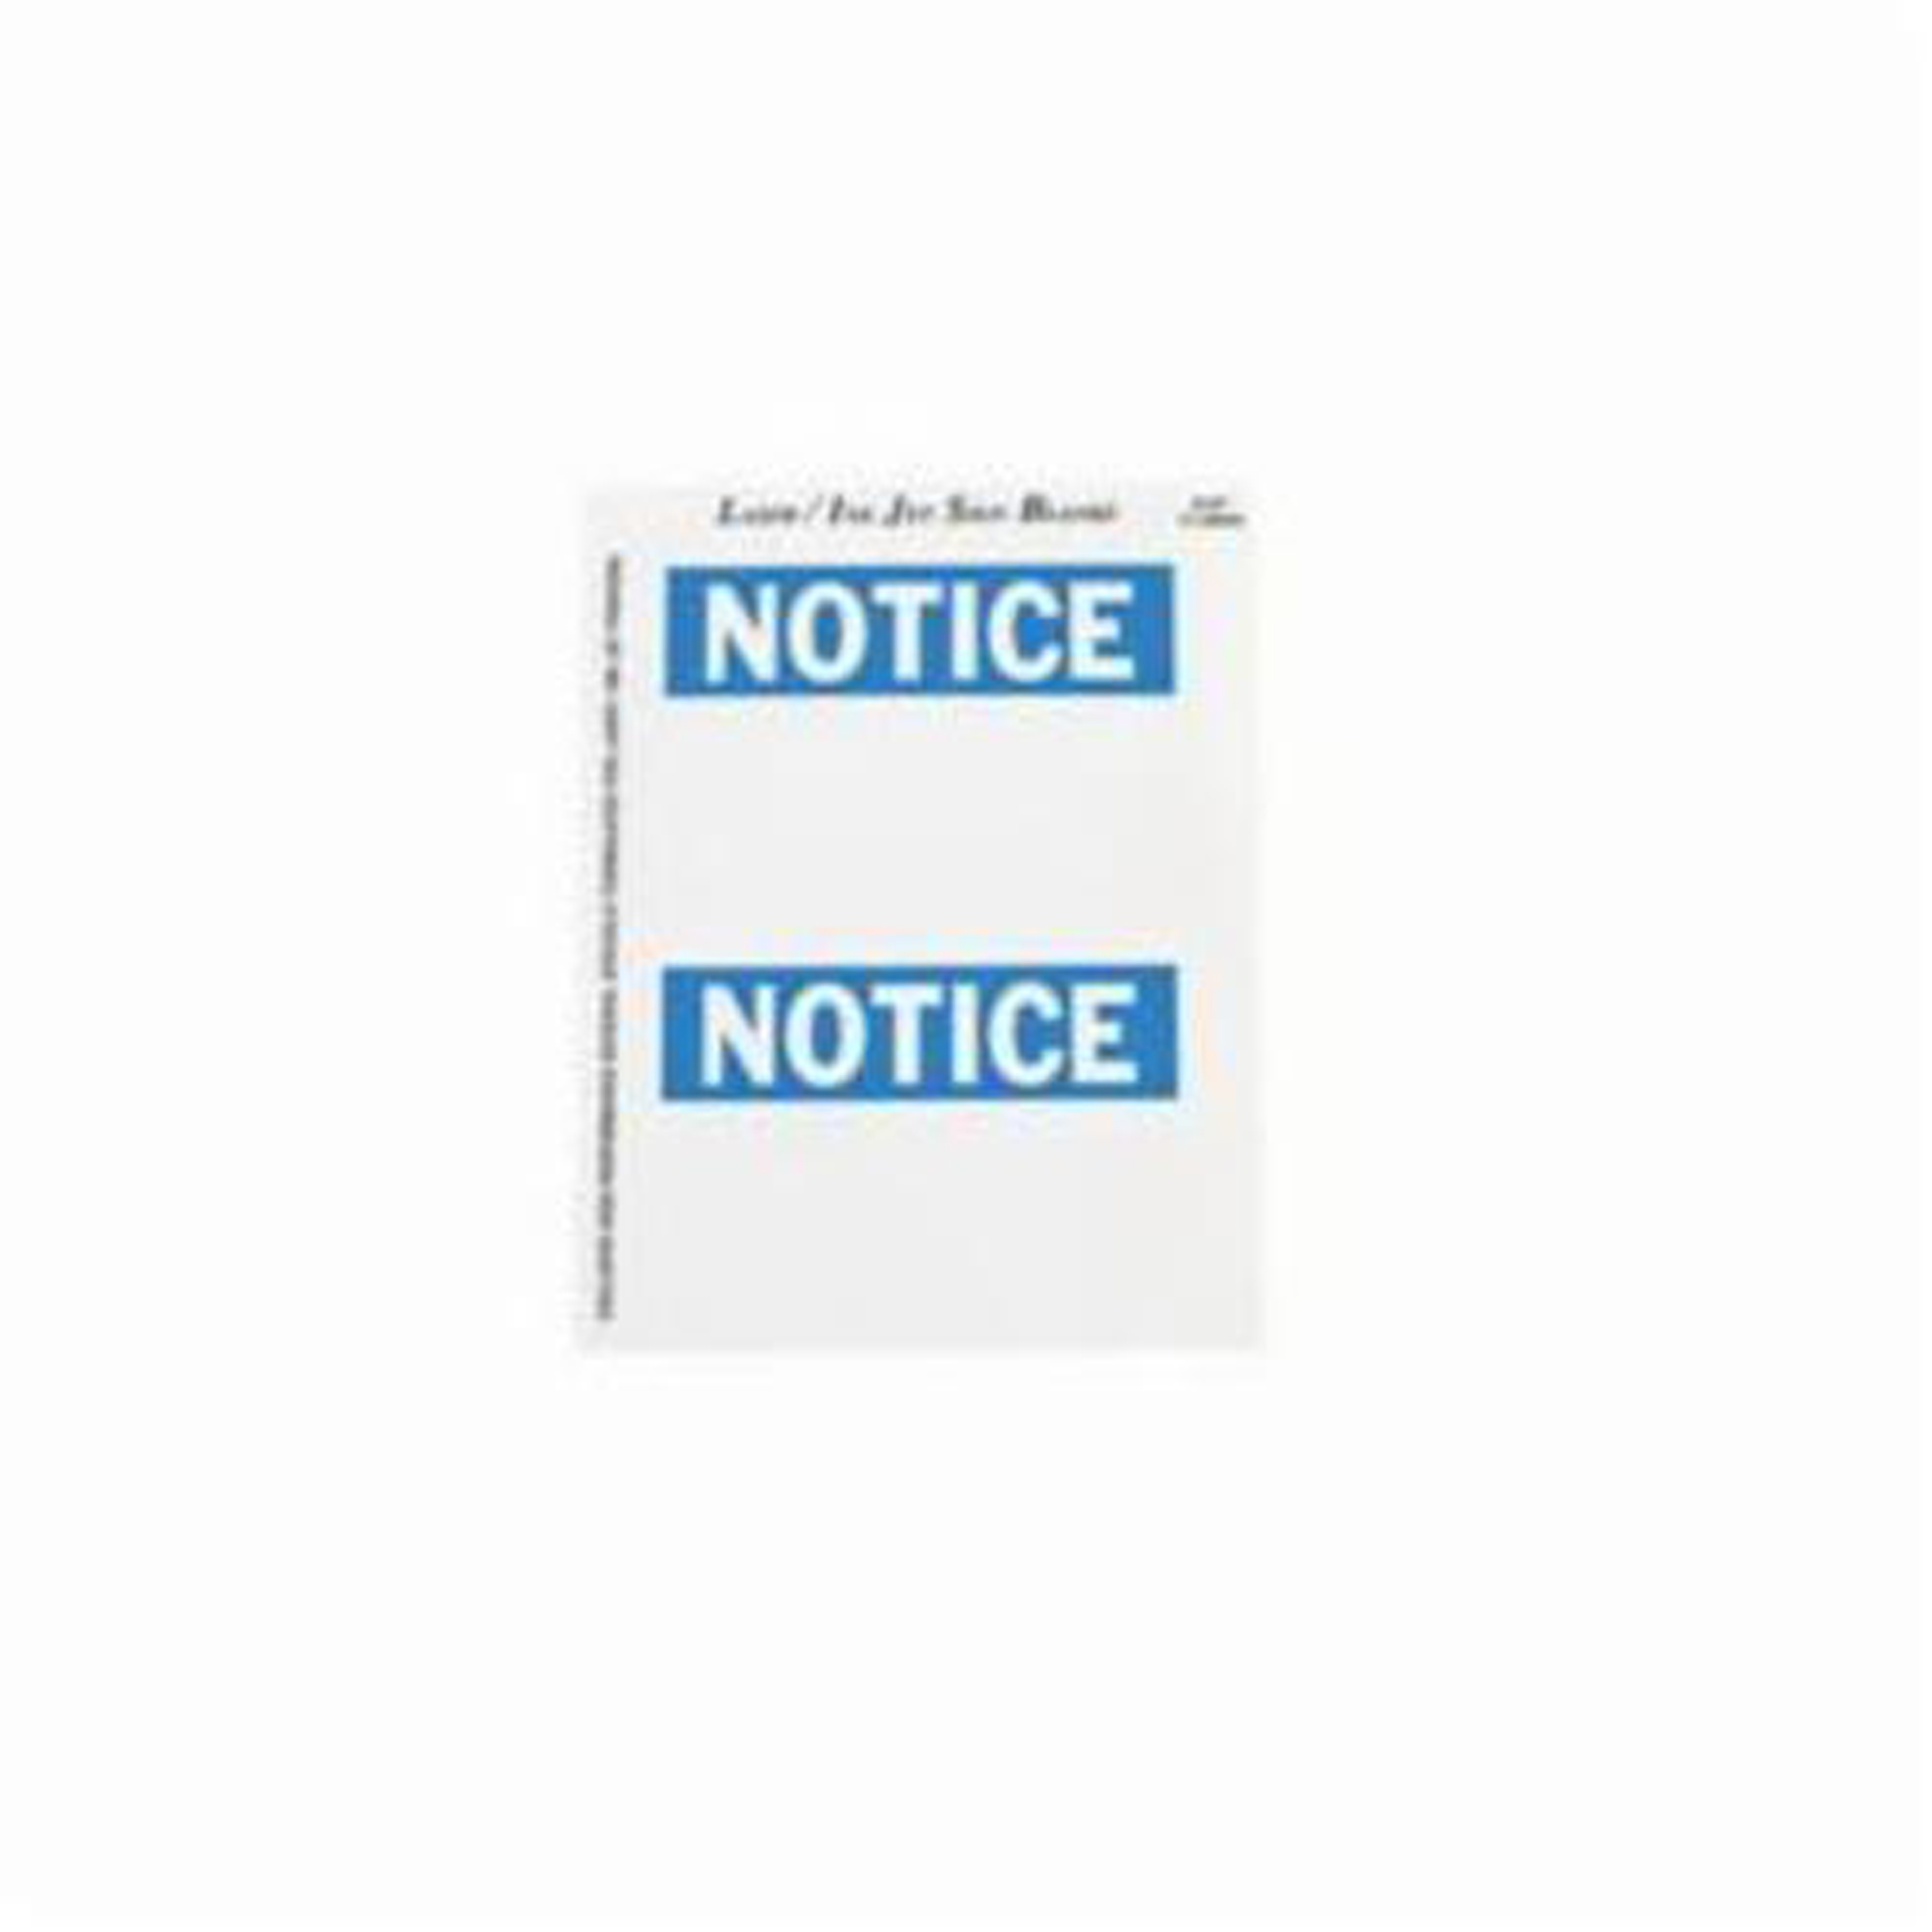 photo about Printable Wire Labels titled Laser Printable Labels